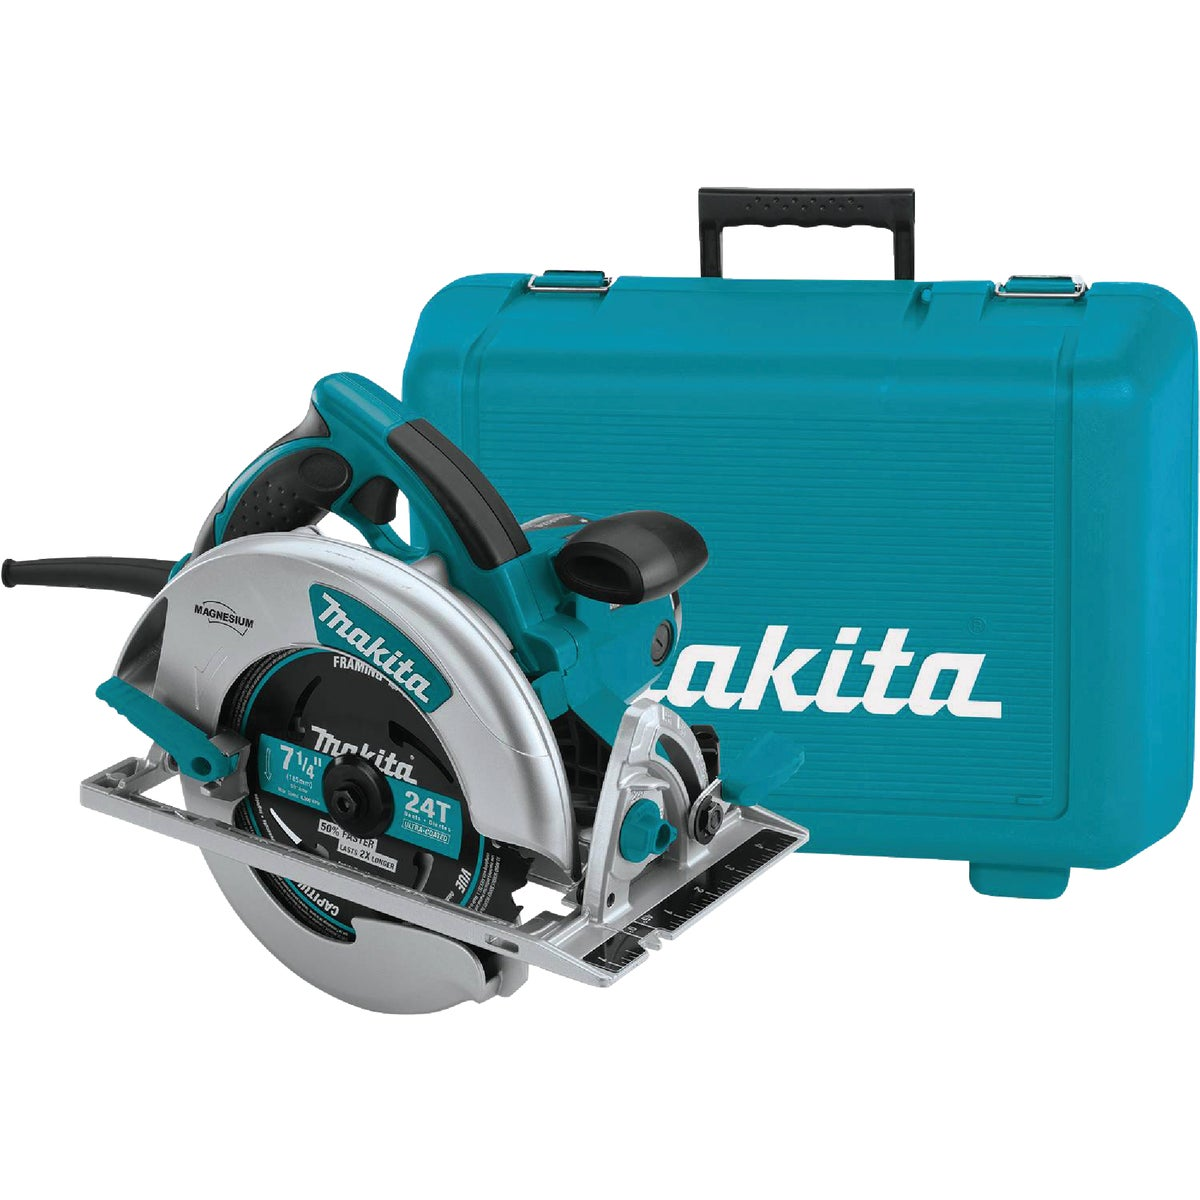 "7-1/4"" MAG CIRCULAR SAW - 5007MG by Makita Usa Inc"